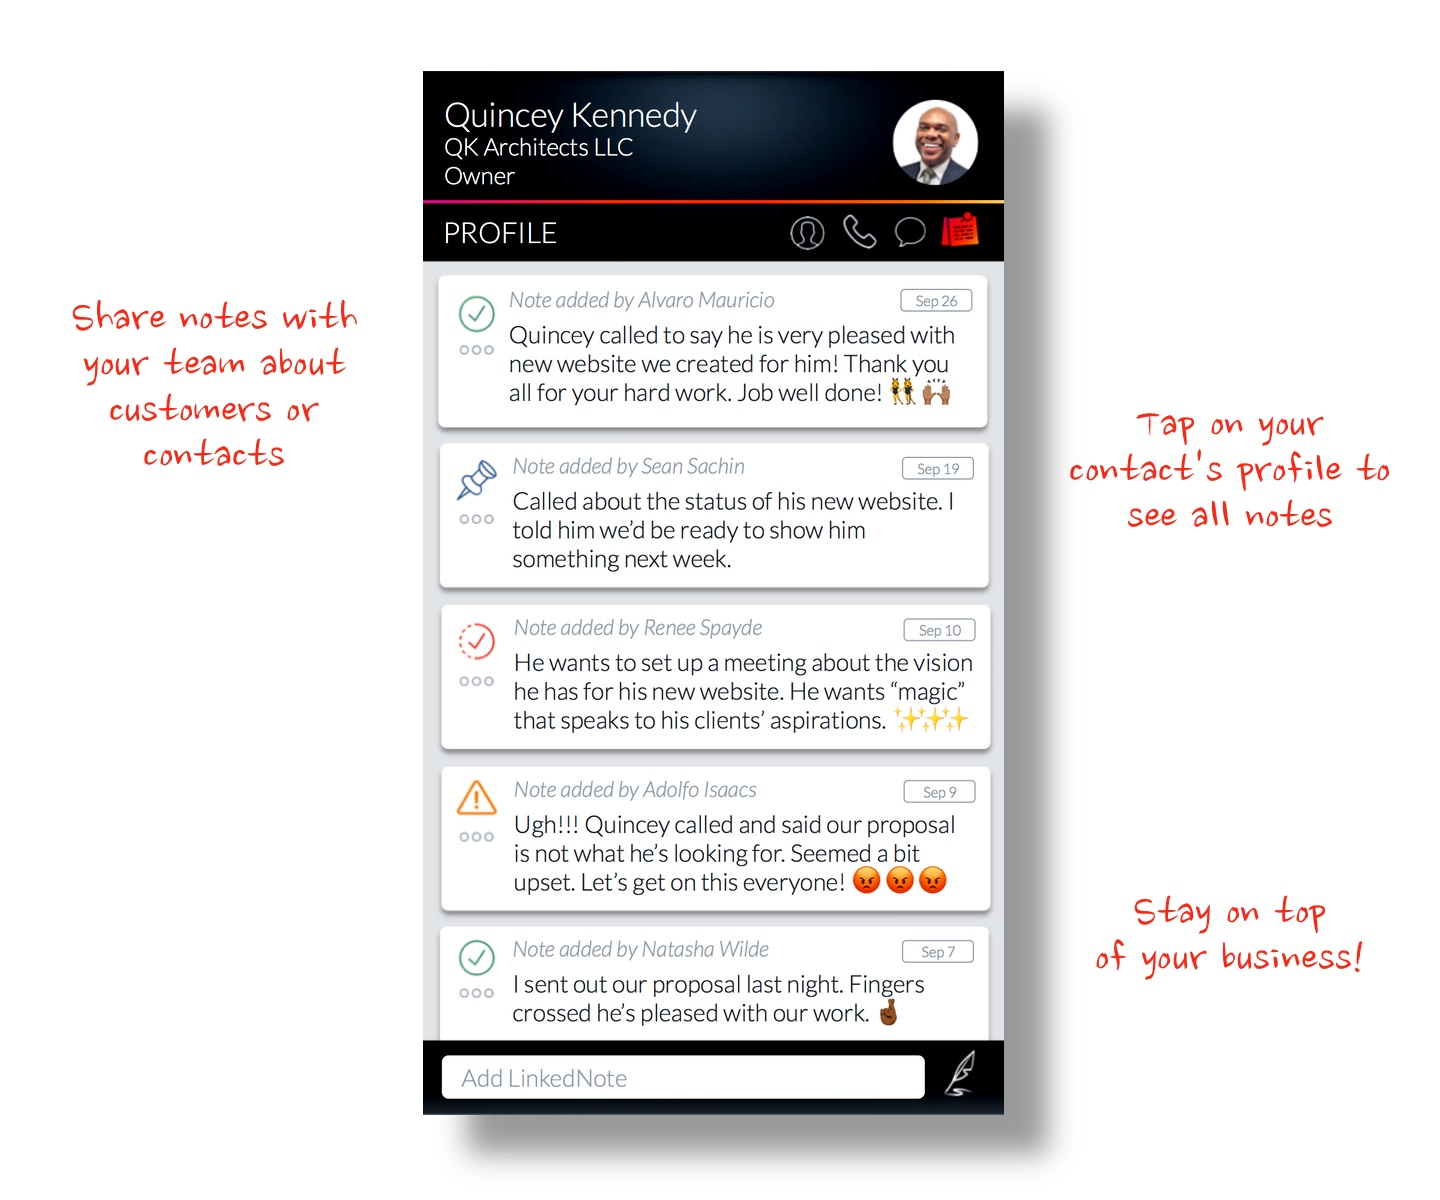 Keep track of business conversations & to-do's with LinkedNotes